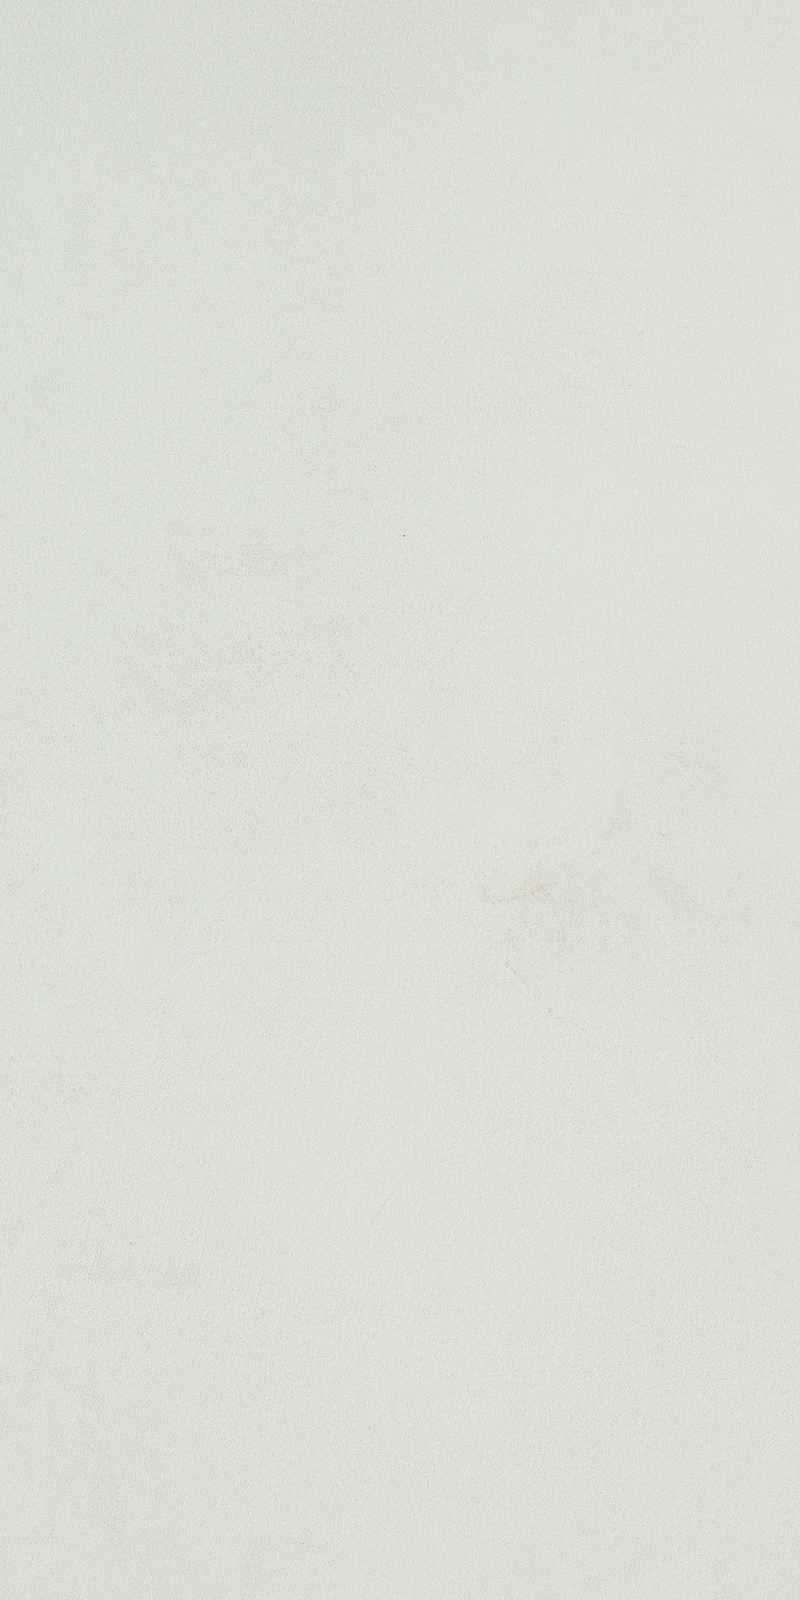 BLOCK   300X600  WHITE - (Euro/Mq 24,89)